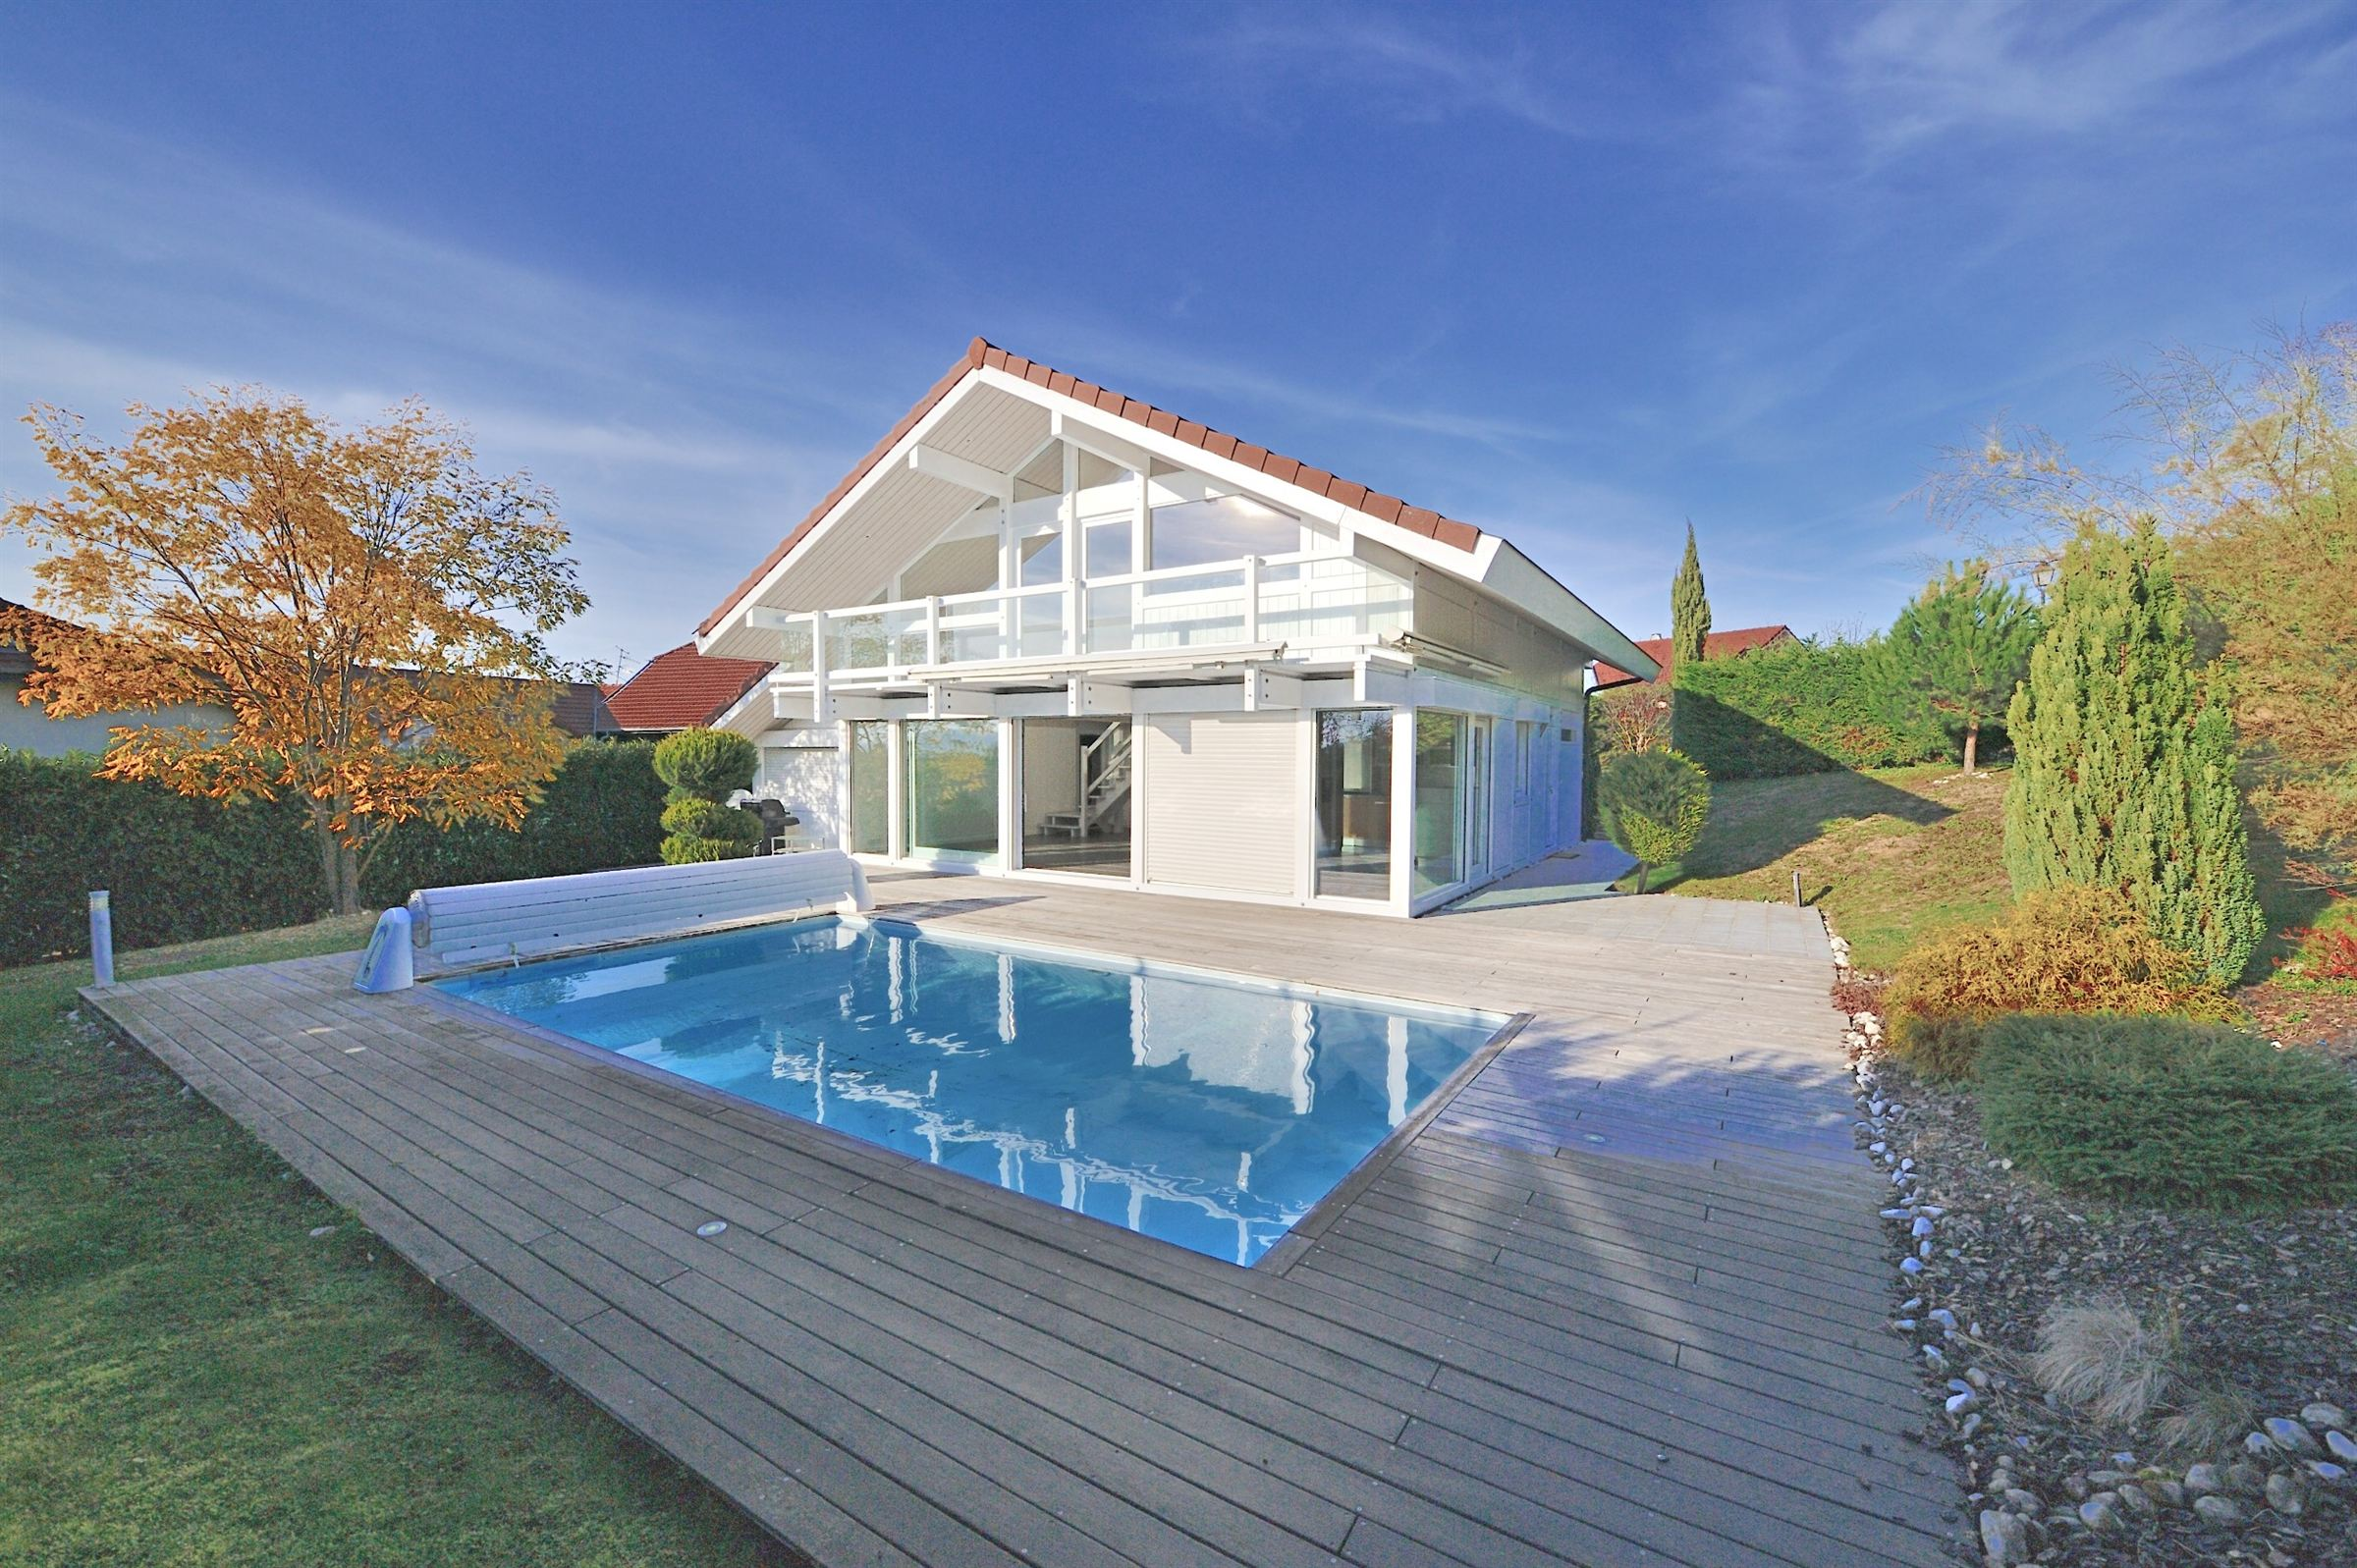 Single Family Home for Sale at PROCHE GENEVE Beaumont, Rhone-Alpes 74160 France